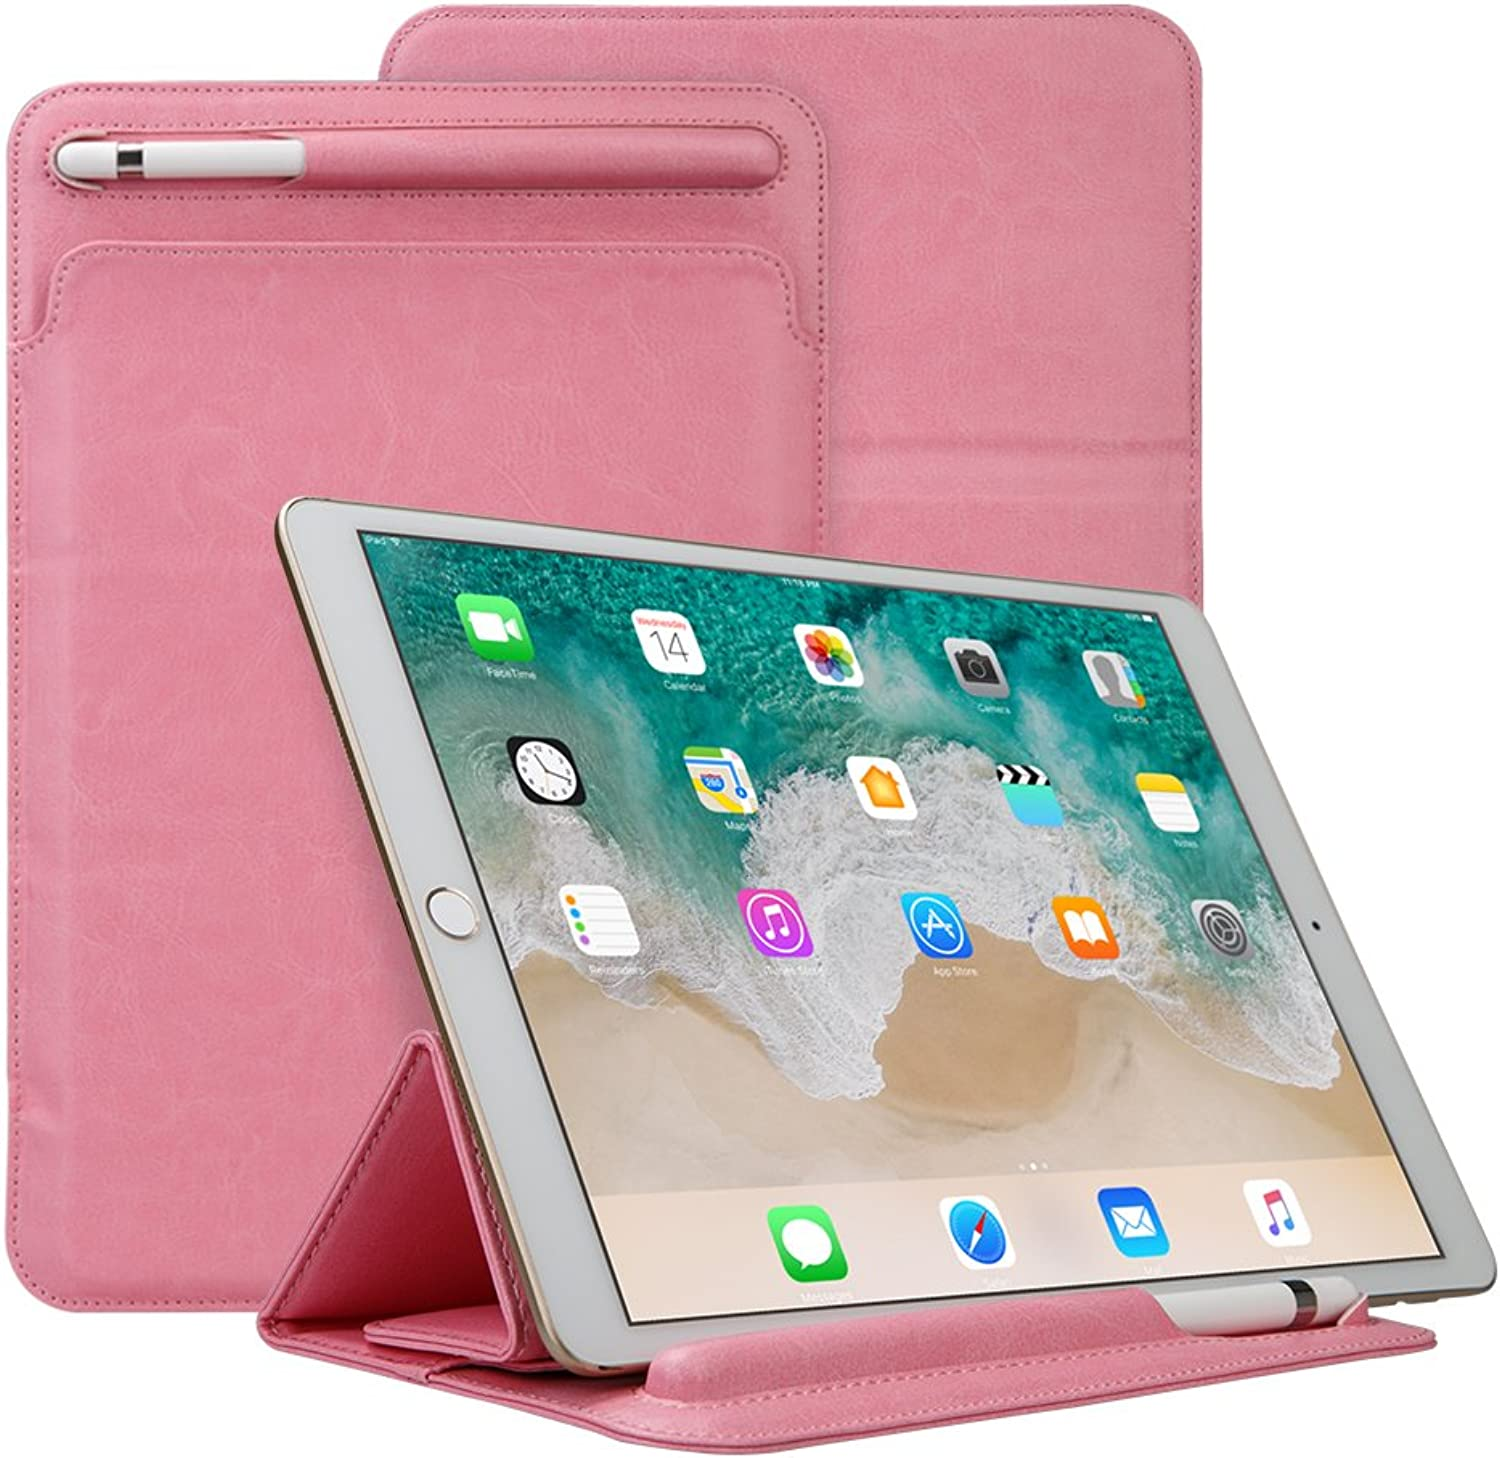 IPad 9.7 inch 2017 Sleeve, TechCode Portable Stylish Elegant Ultra Slim Lightweight Flip Folio PU Leather Predective Stand Case Cover W Pencil Holder Sleeve for iPad 9.7 inch 2017 2018 Tablet(Pink)